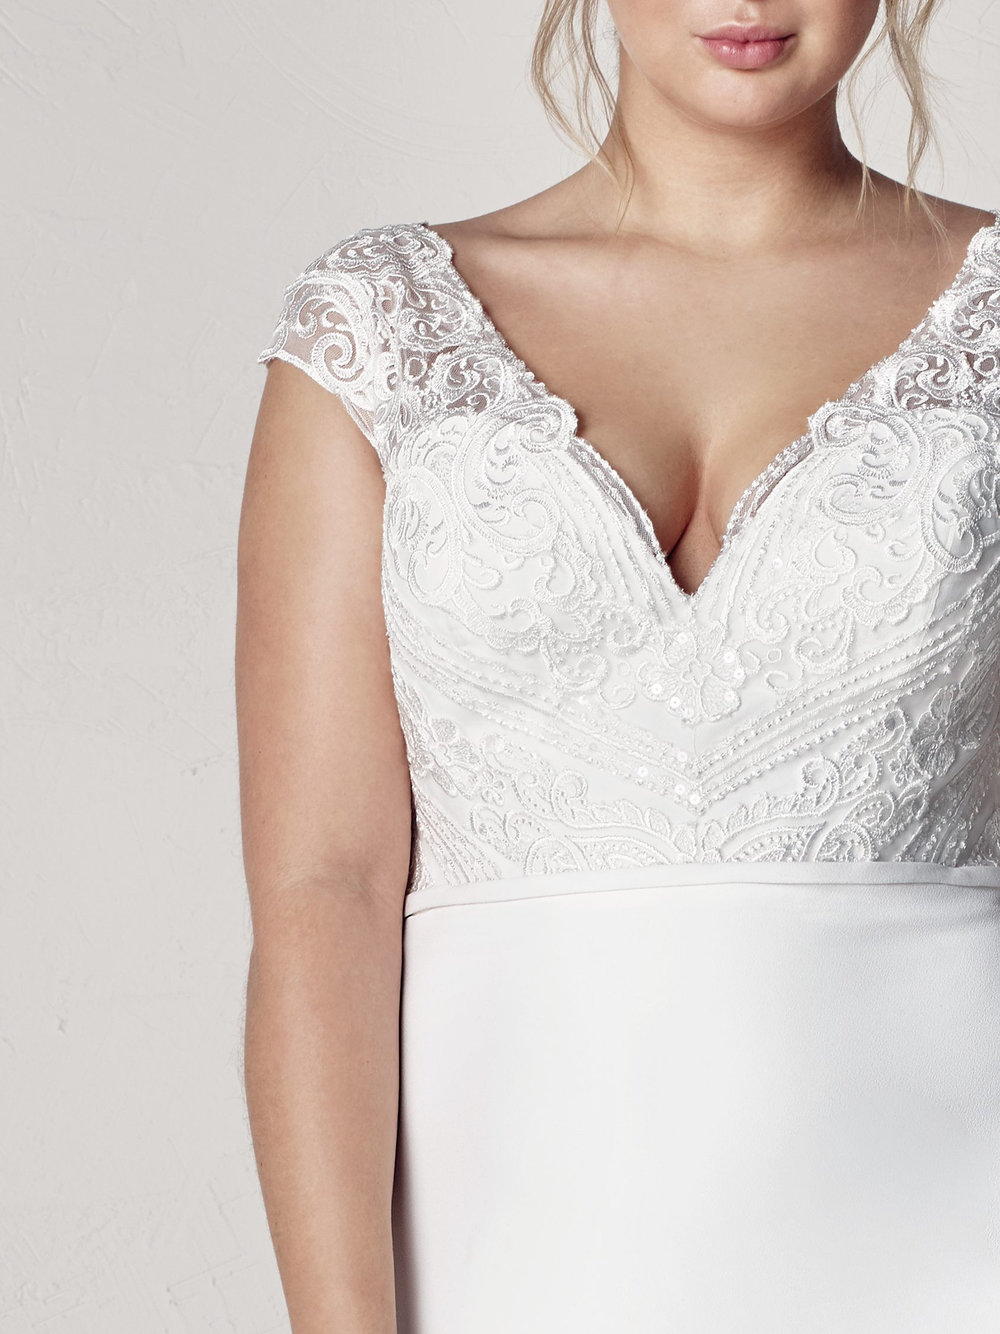 PronoviasBridal-BridesbyYoung-PlusSizeWeddingDress-Eyra-2.jpg